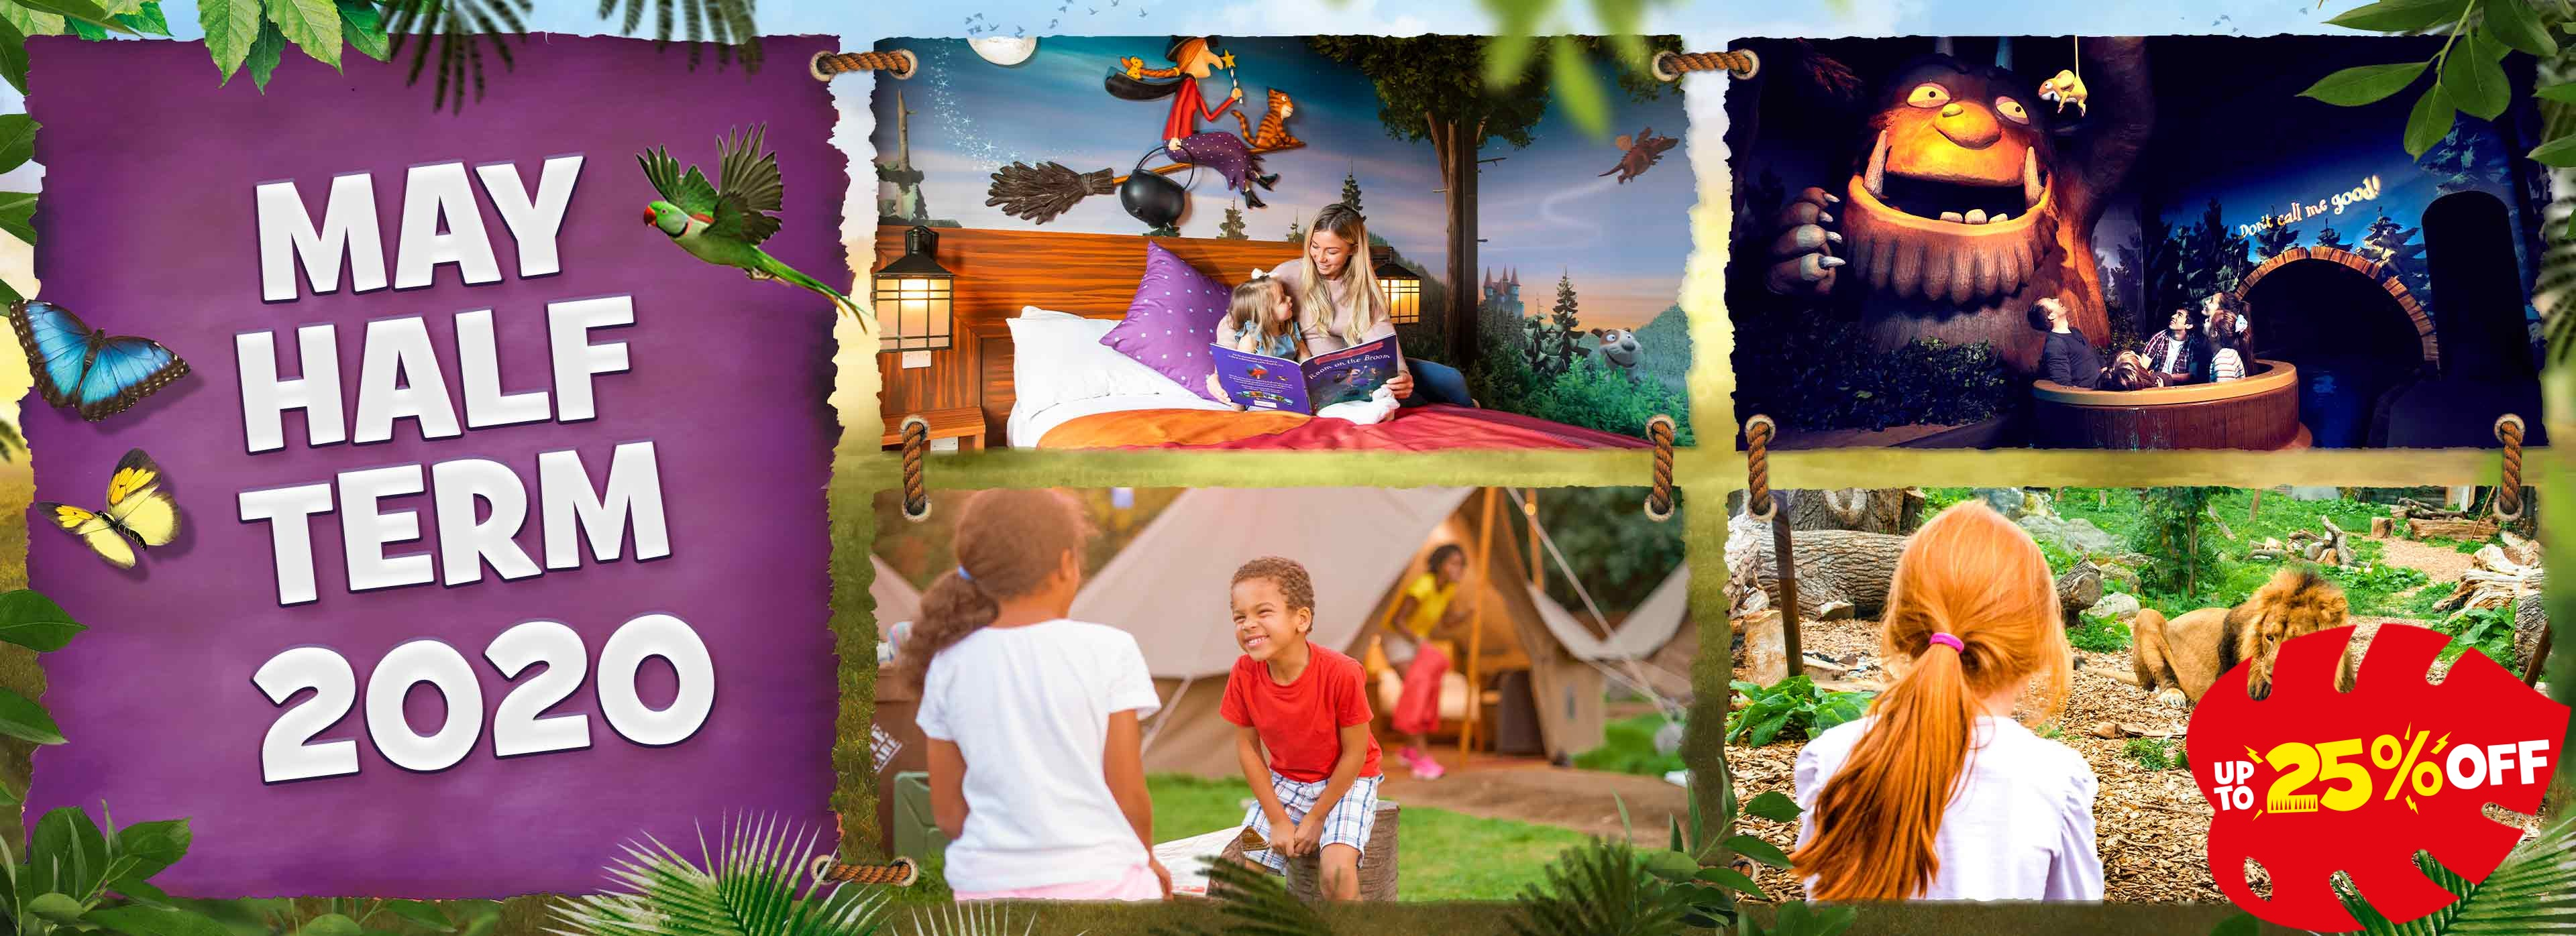 May Half Term 2020 at Chessington World of Adventures Resort